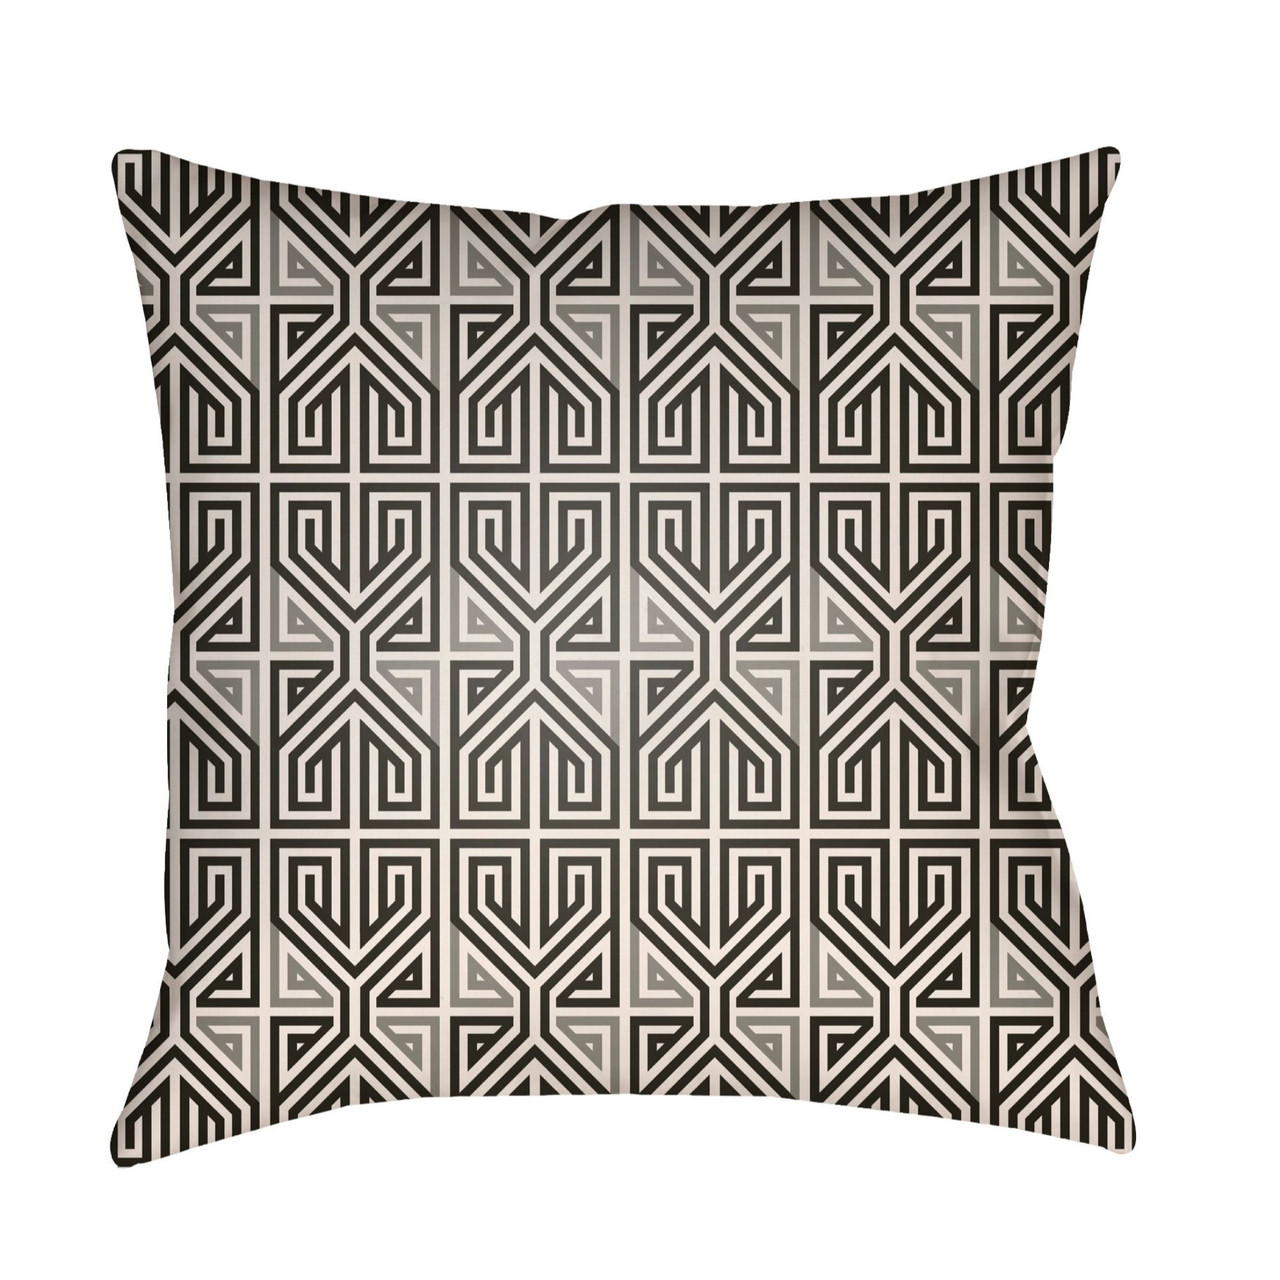 22 Black Gray Geometric Square Outdoor Throw Pillow Cover Christmas Central